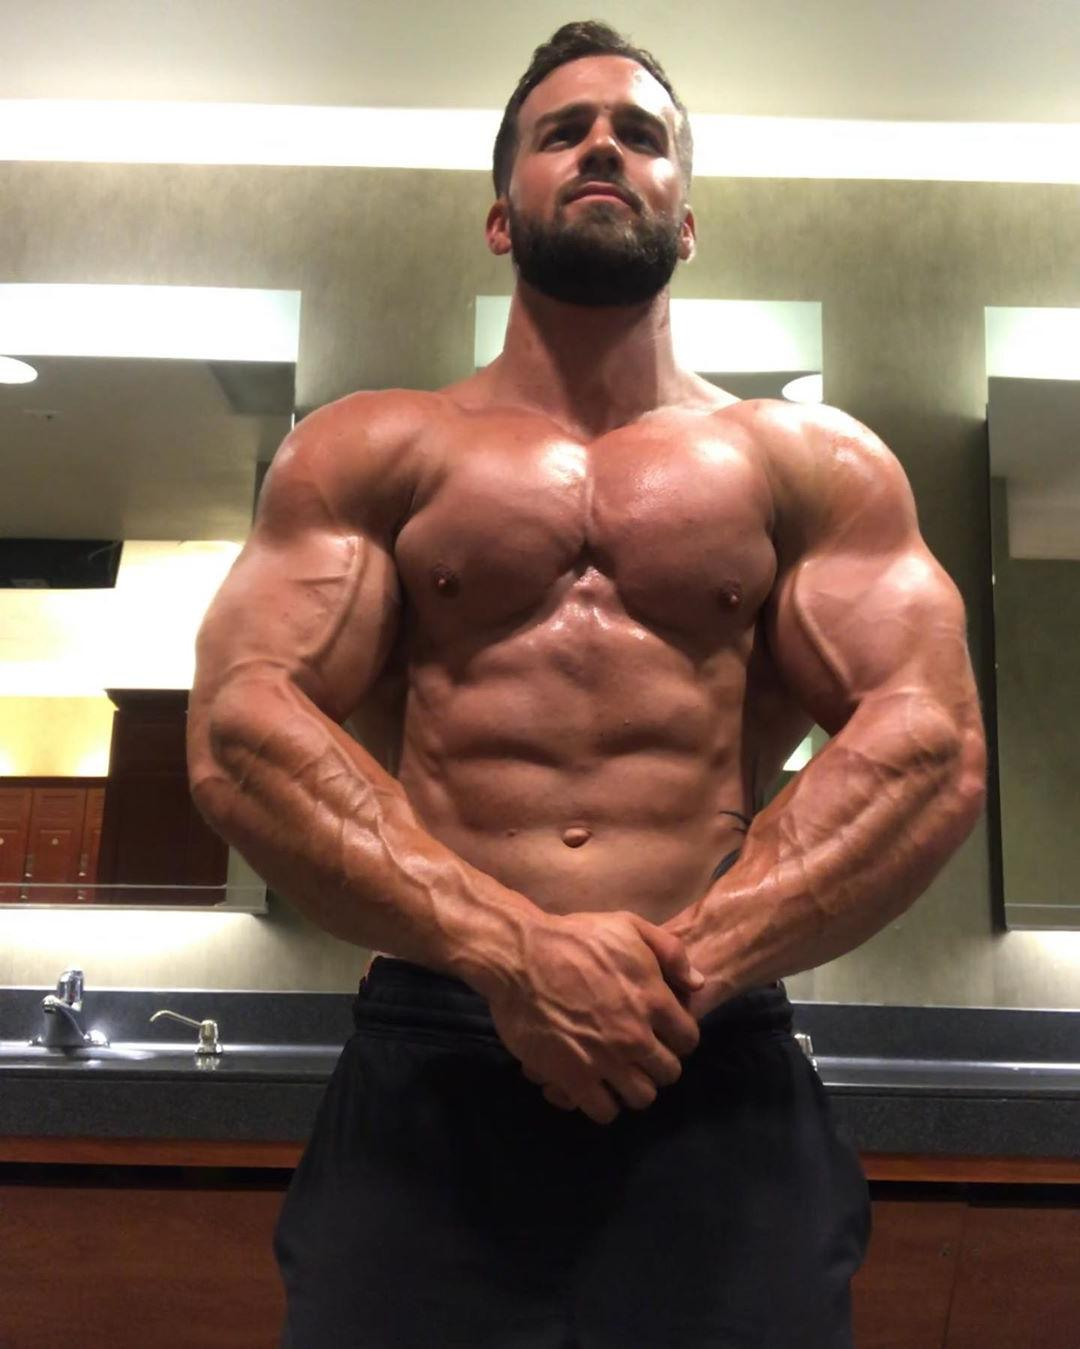 huge-bulky-muscle-shirtless-daddy-flexing-showing-gains-wet-veiny-body